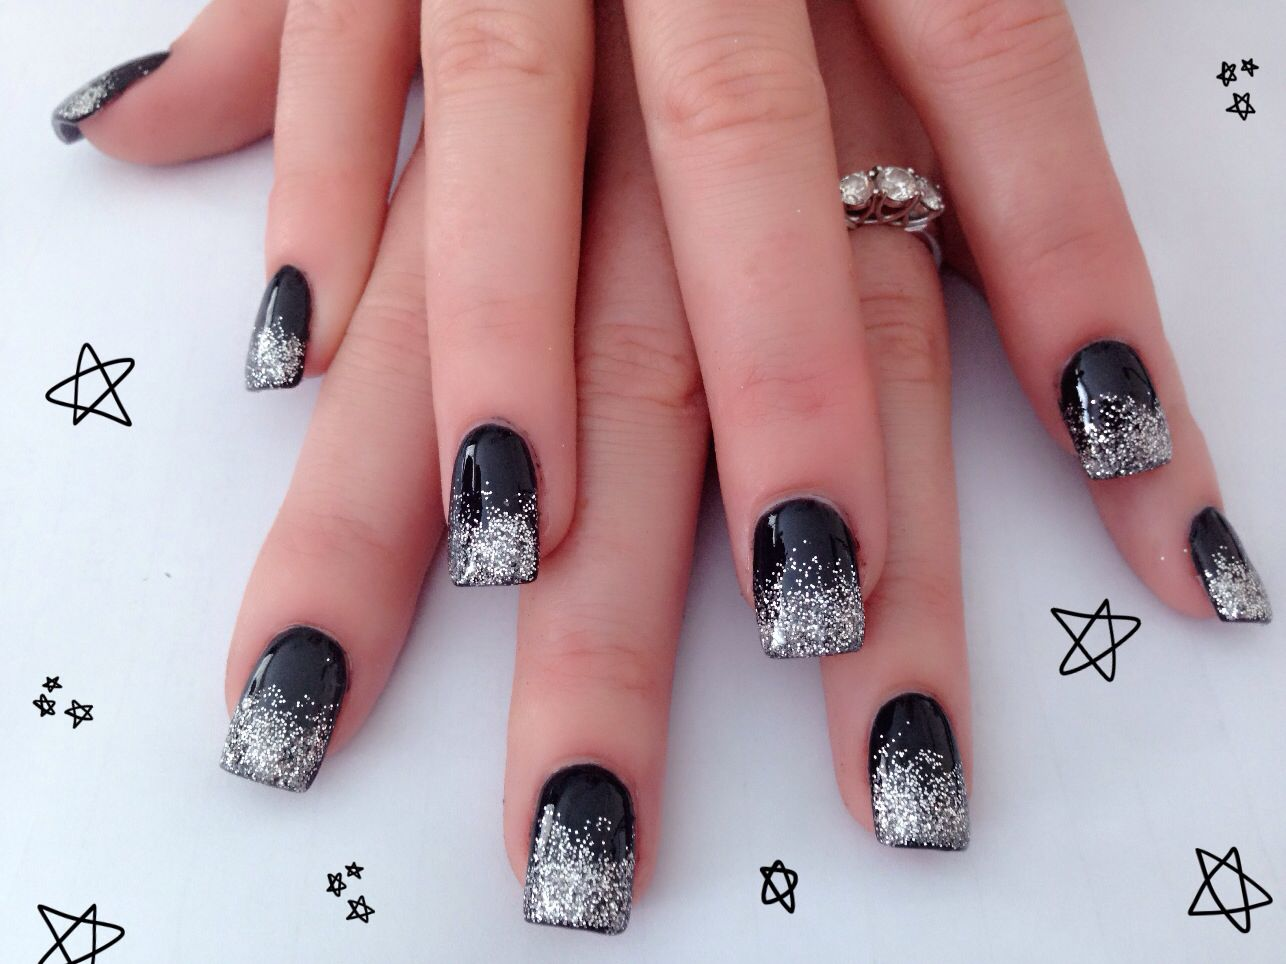 Black & Silver Acrylic Nail Design - Black & Silver Acrylic Nail Design Nails By Me Pinterest